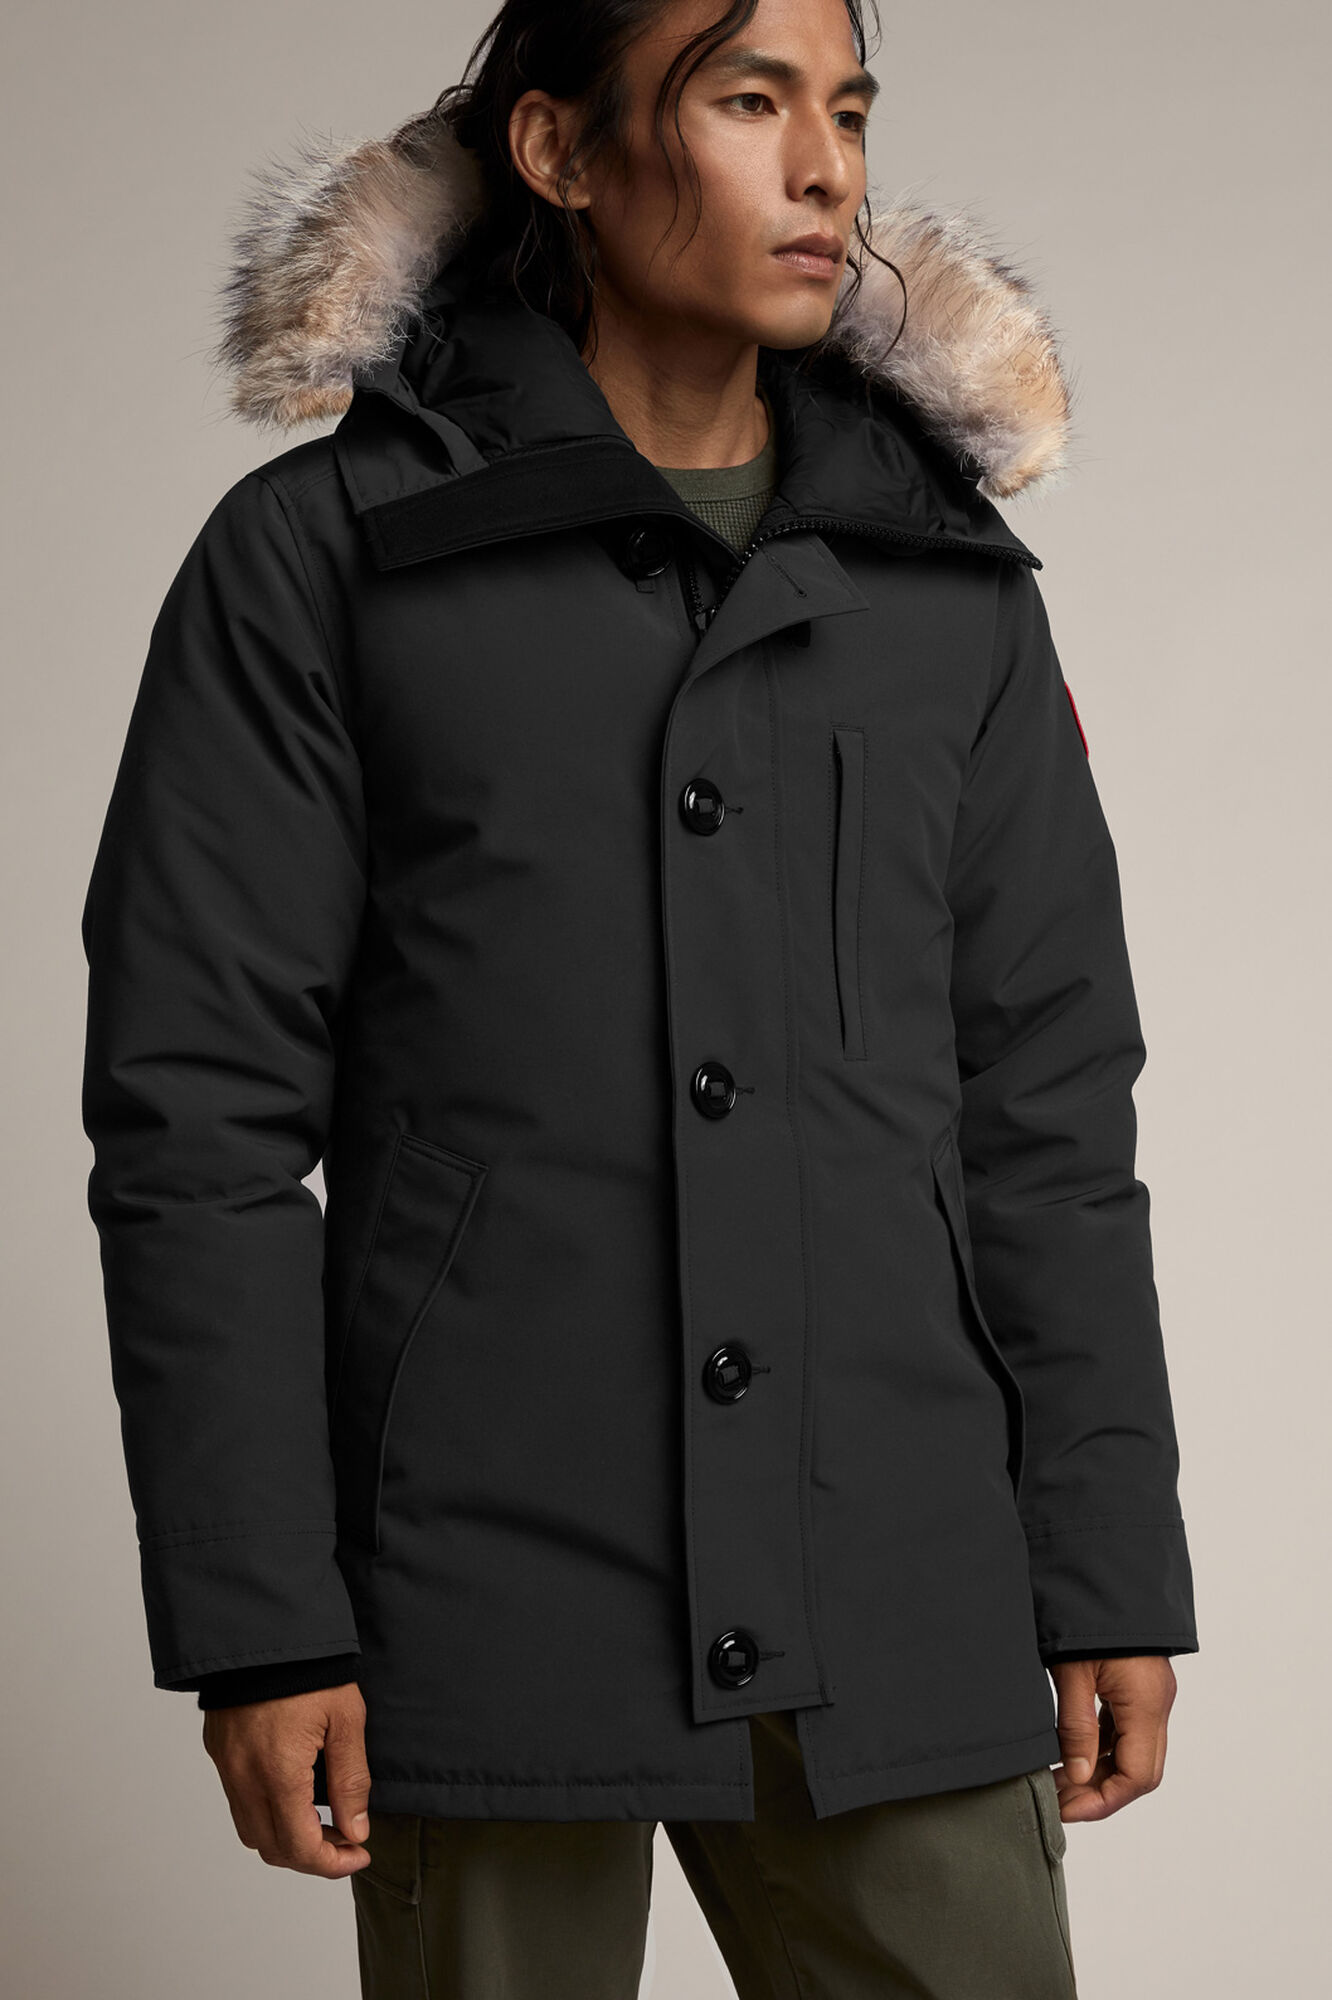 Canada Goose montebello parka sale authentic - Men's Arctic Program Chateau Parka | Canada Goose?